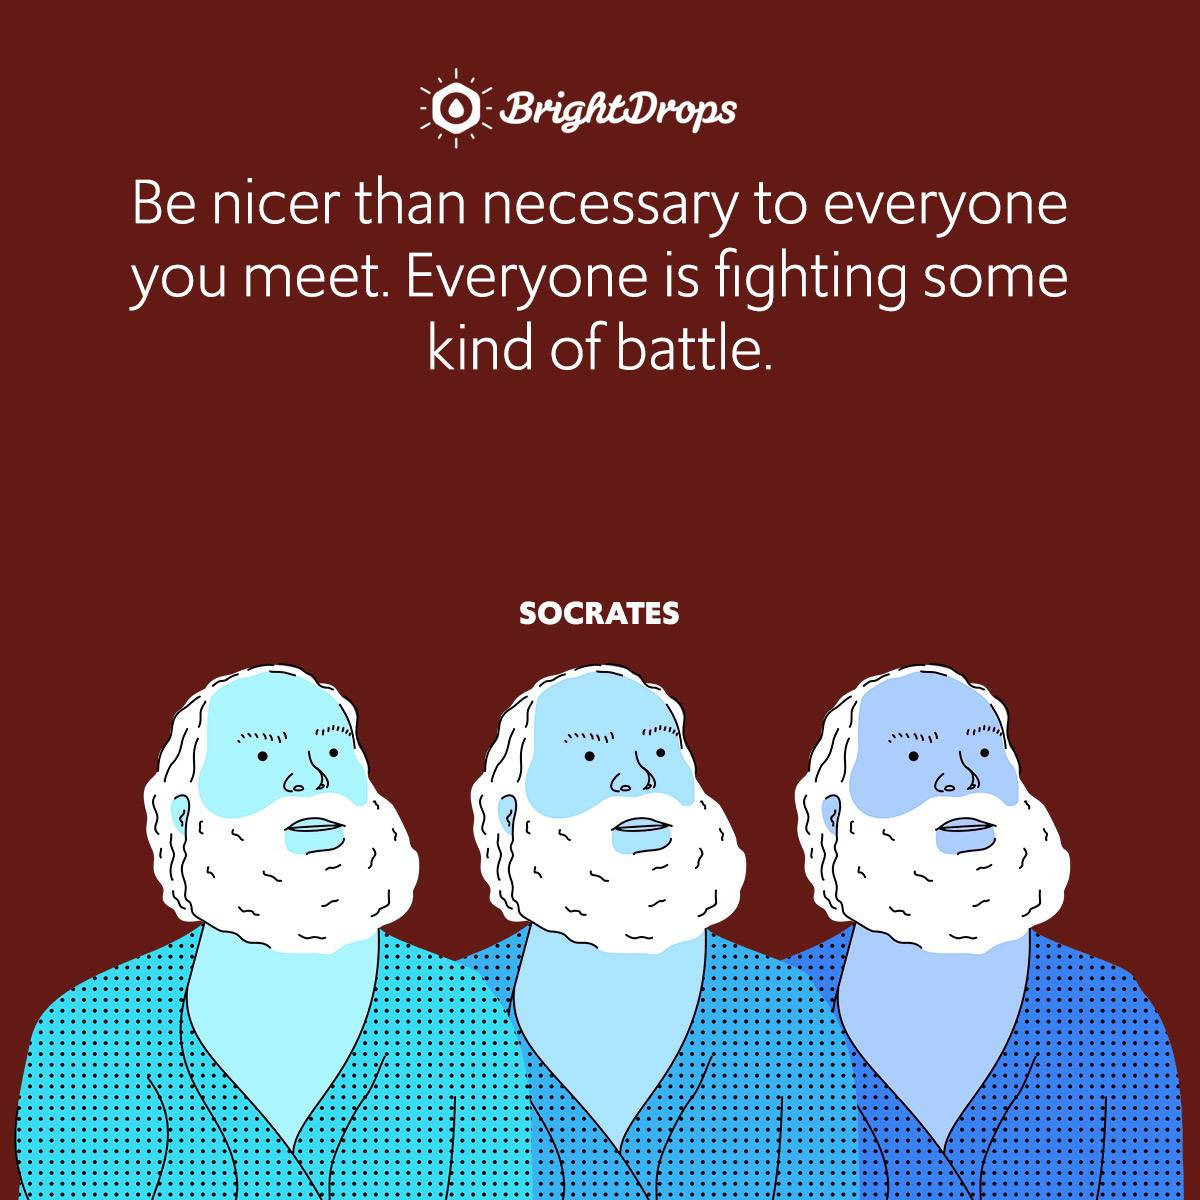 Be nicer than necessary to everyone you meet. Everyone is fighting some kind of battle.